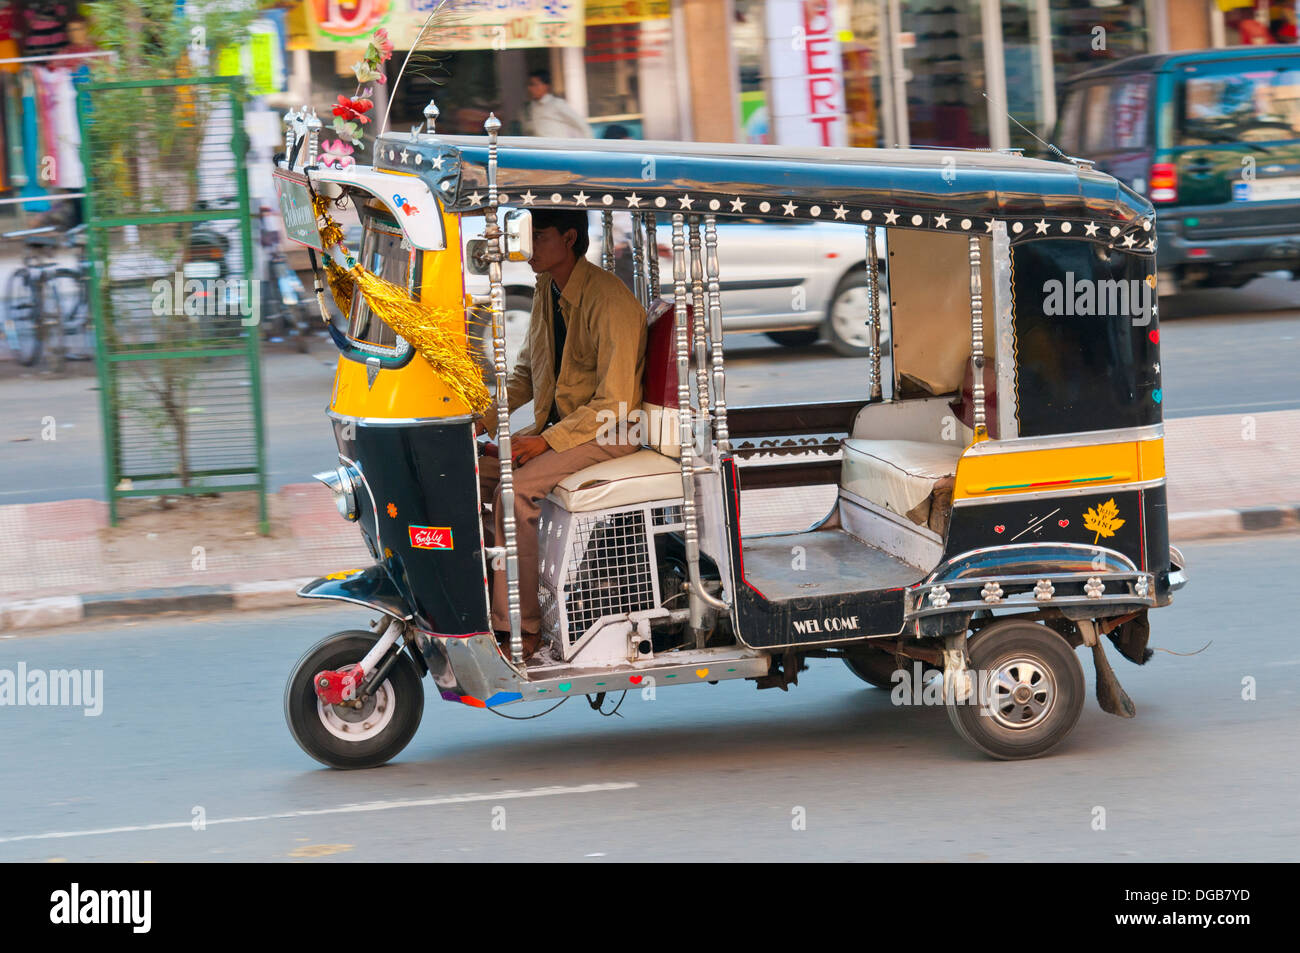 tuk tuk auto rickshaw jodhpur rajasthan india asia stock photo royalty free image 61713329. Black Bedroom Furniture Sets. Home Design Ideas